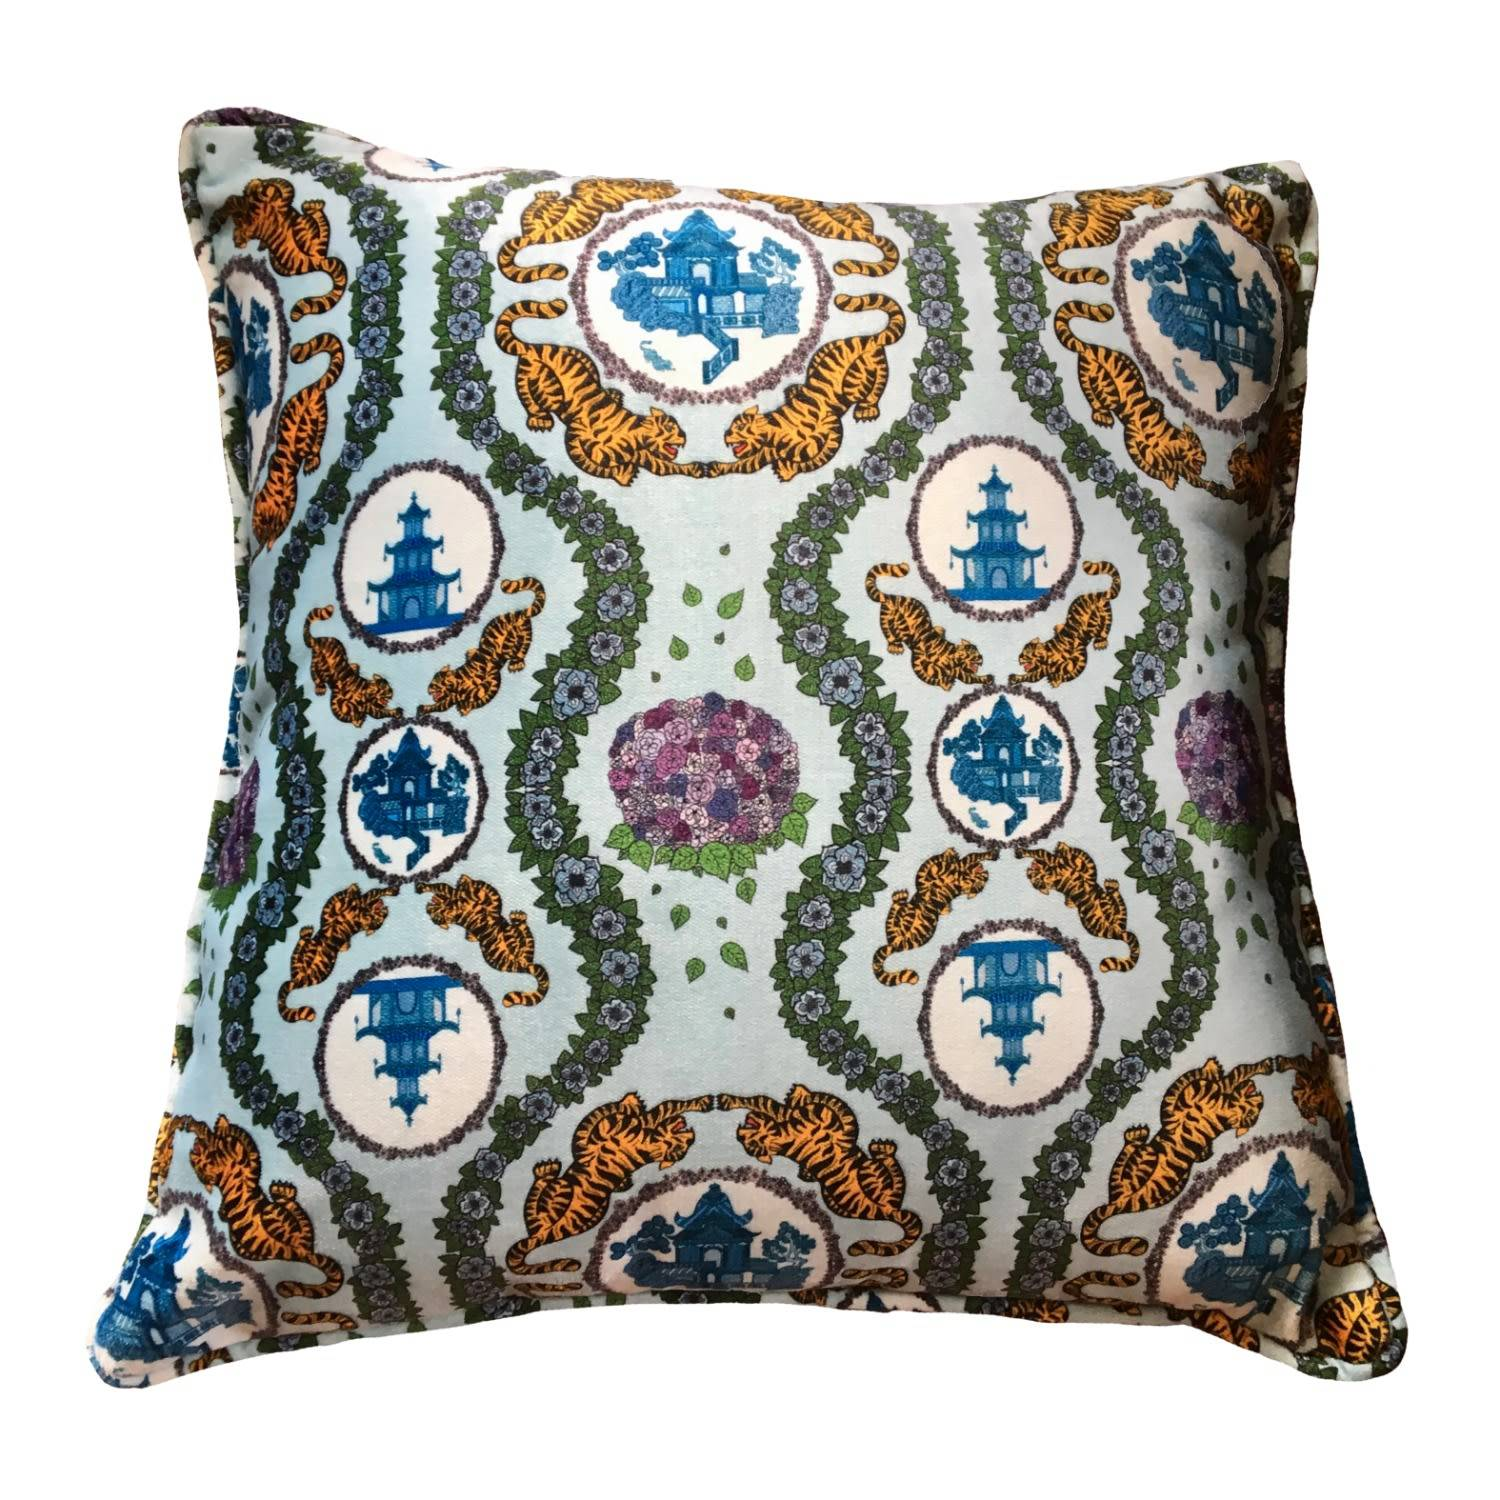 Abigail Hardie Home - Tiger Chinoiserie in Blue Velvet Large Cushion